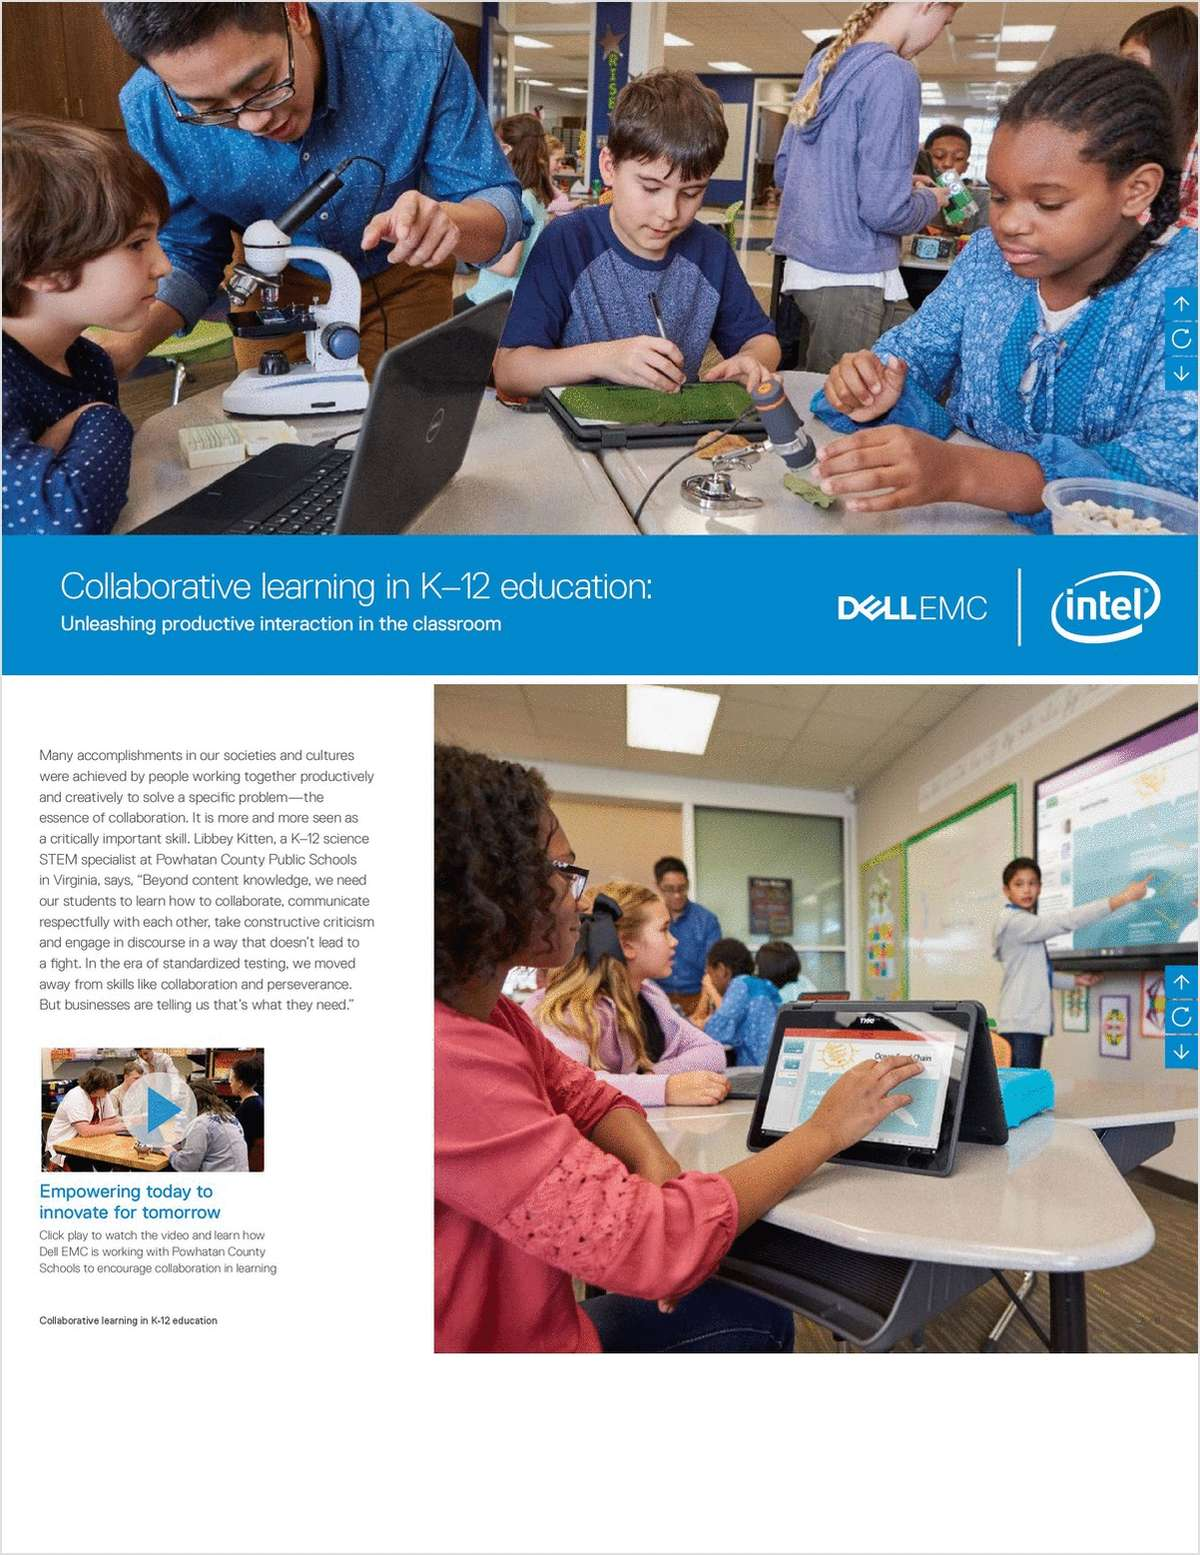 Collaborative Learning in K-12 Education - Unleashing Productive Interaction in the Classroom